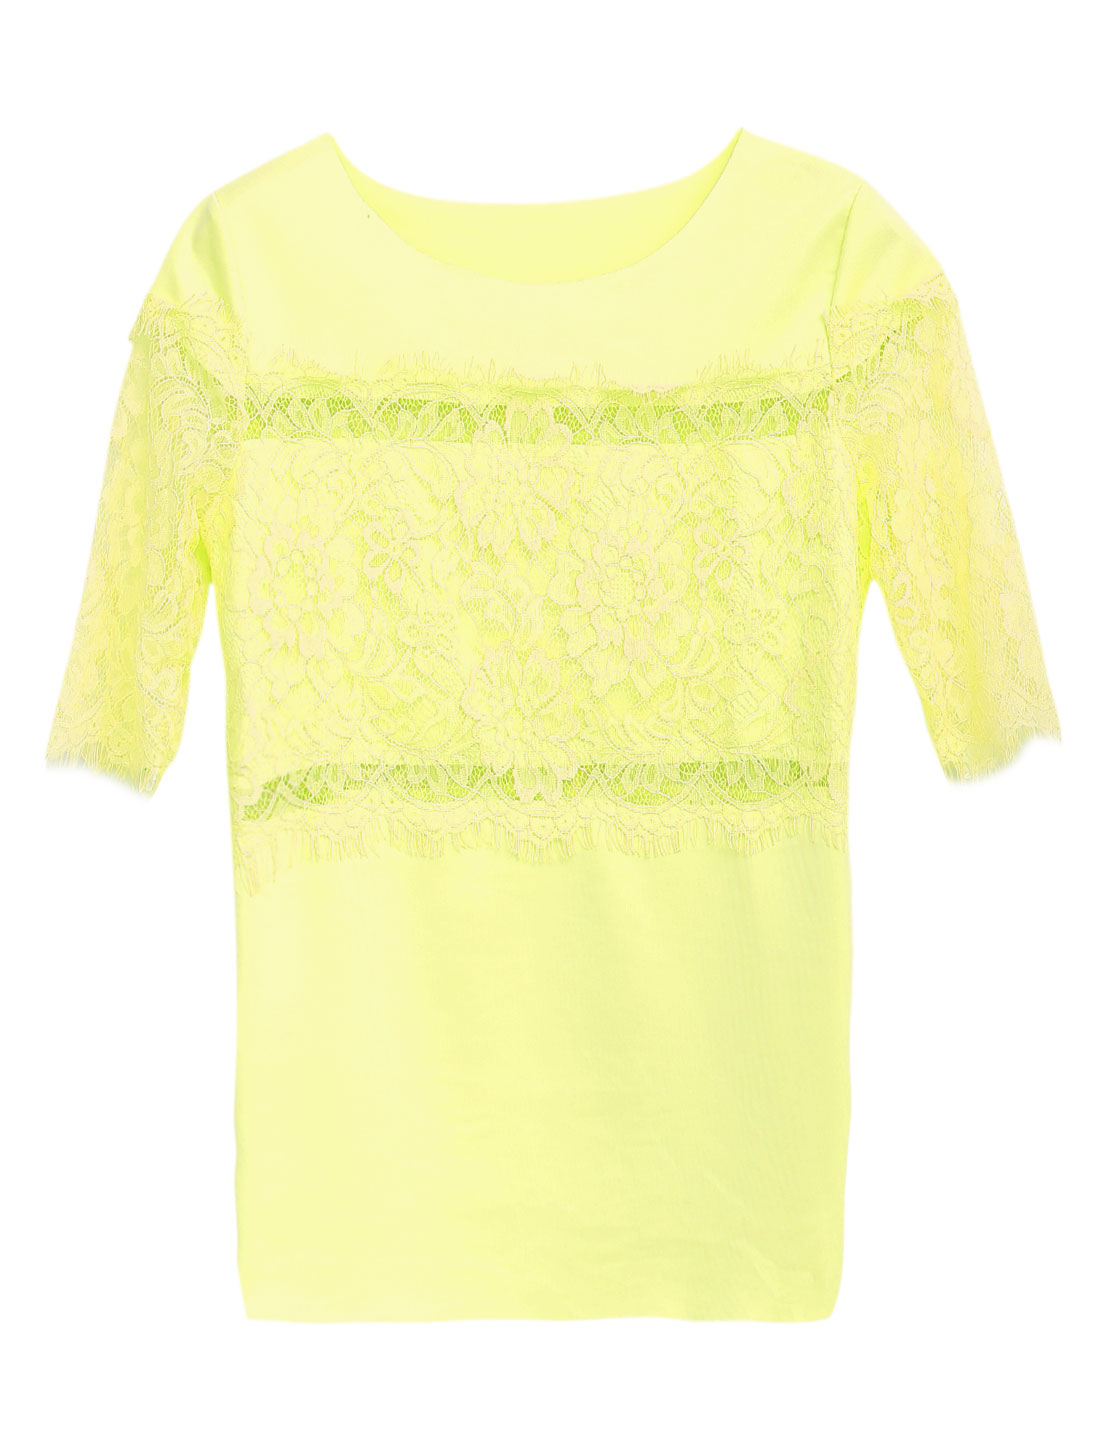 Women Elbow Sleeve Eyelash Lace Detail Sweet Chic Blouse Light Yellow S